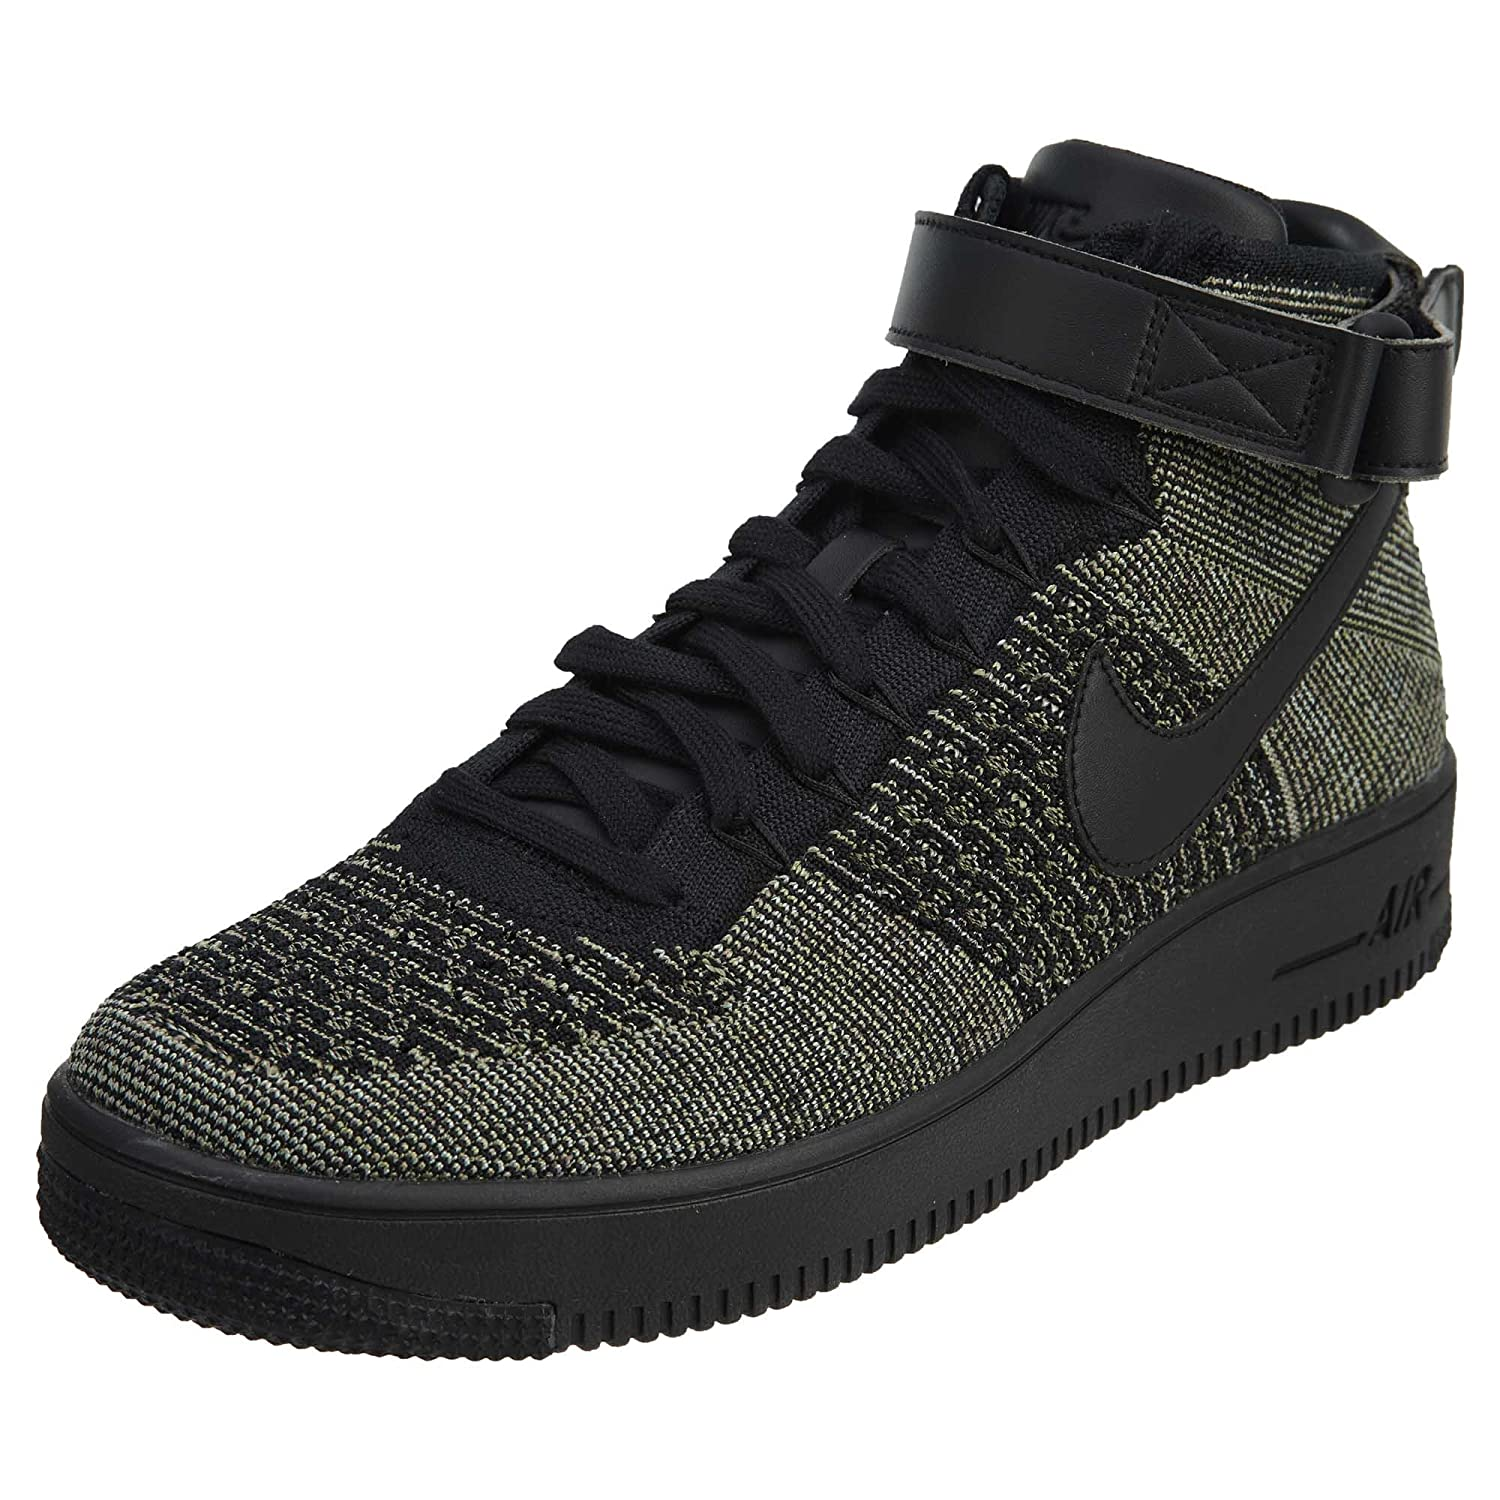 BUTY NIKE AIR FORCE1 ULTRA FLYKNIT MID 817420 301 44,5